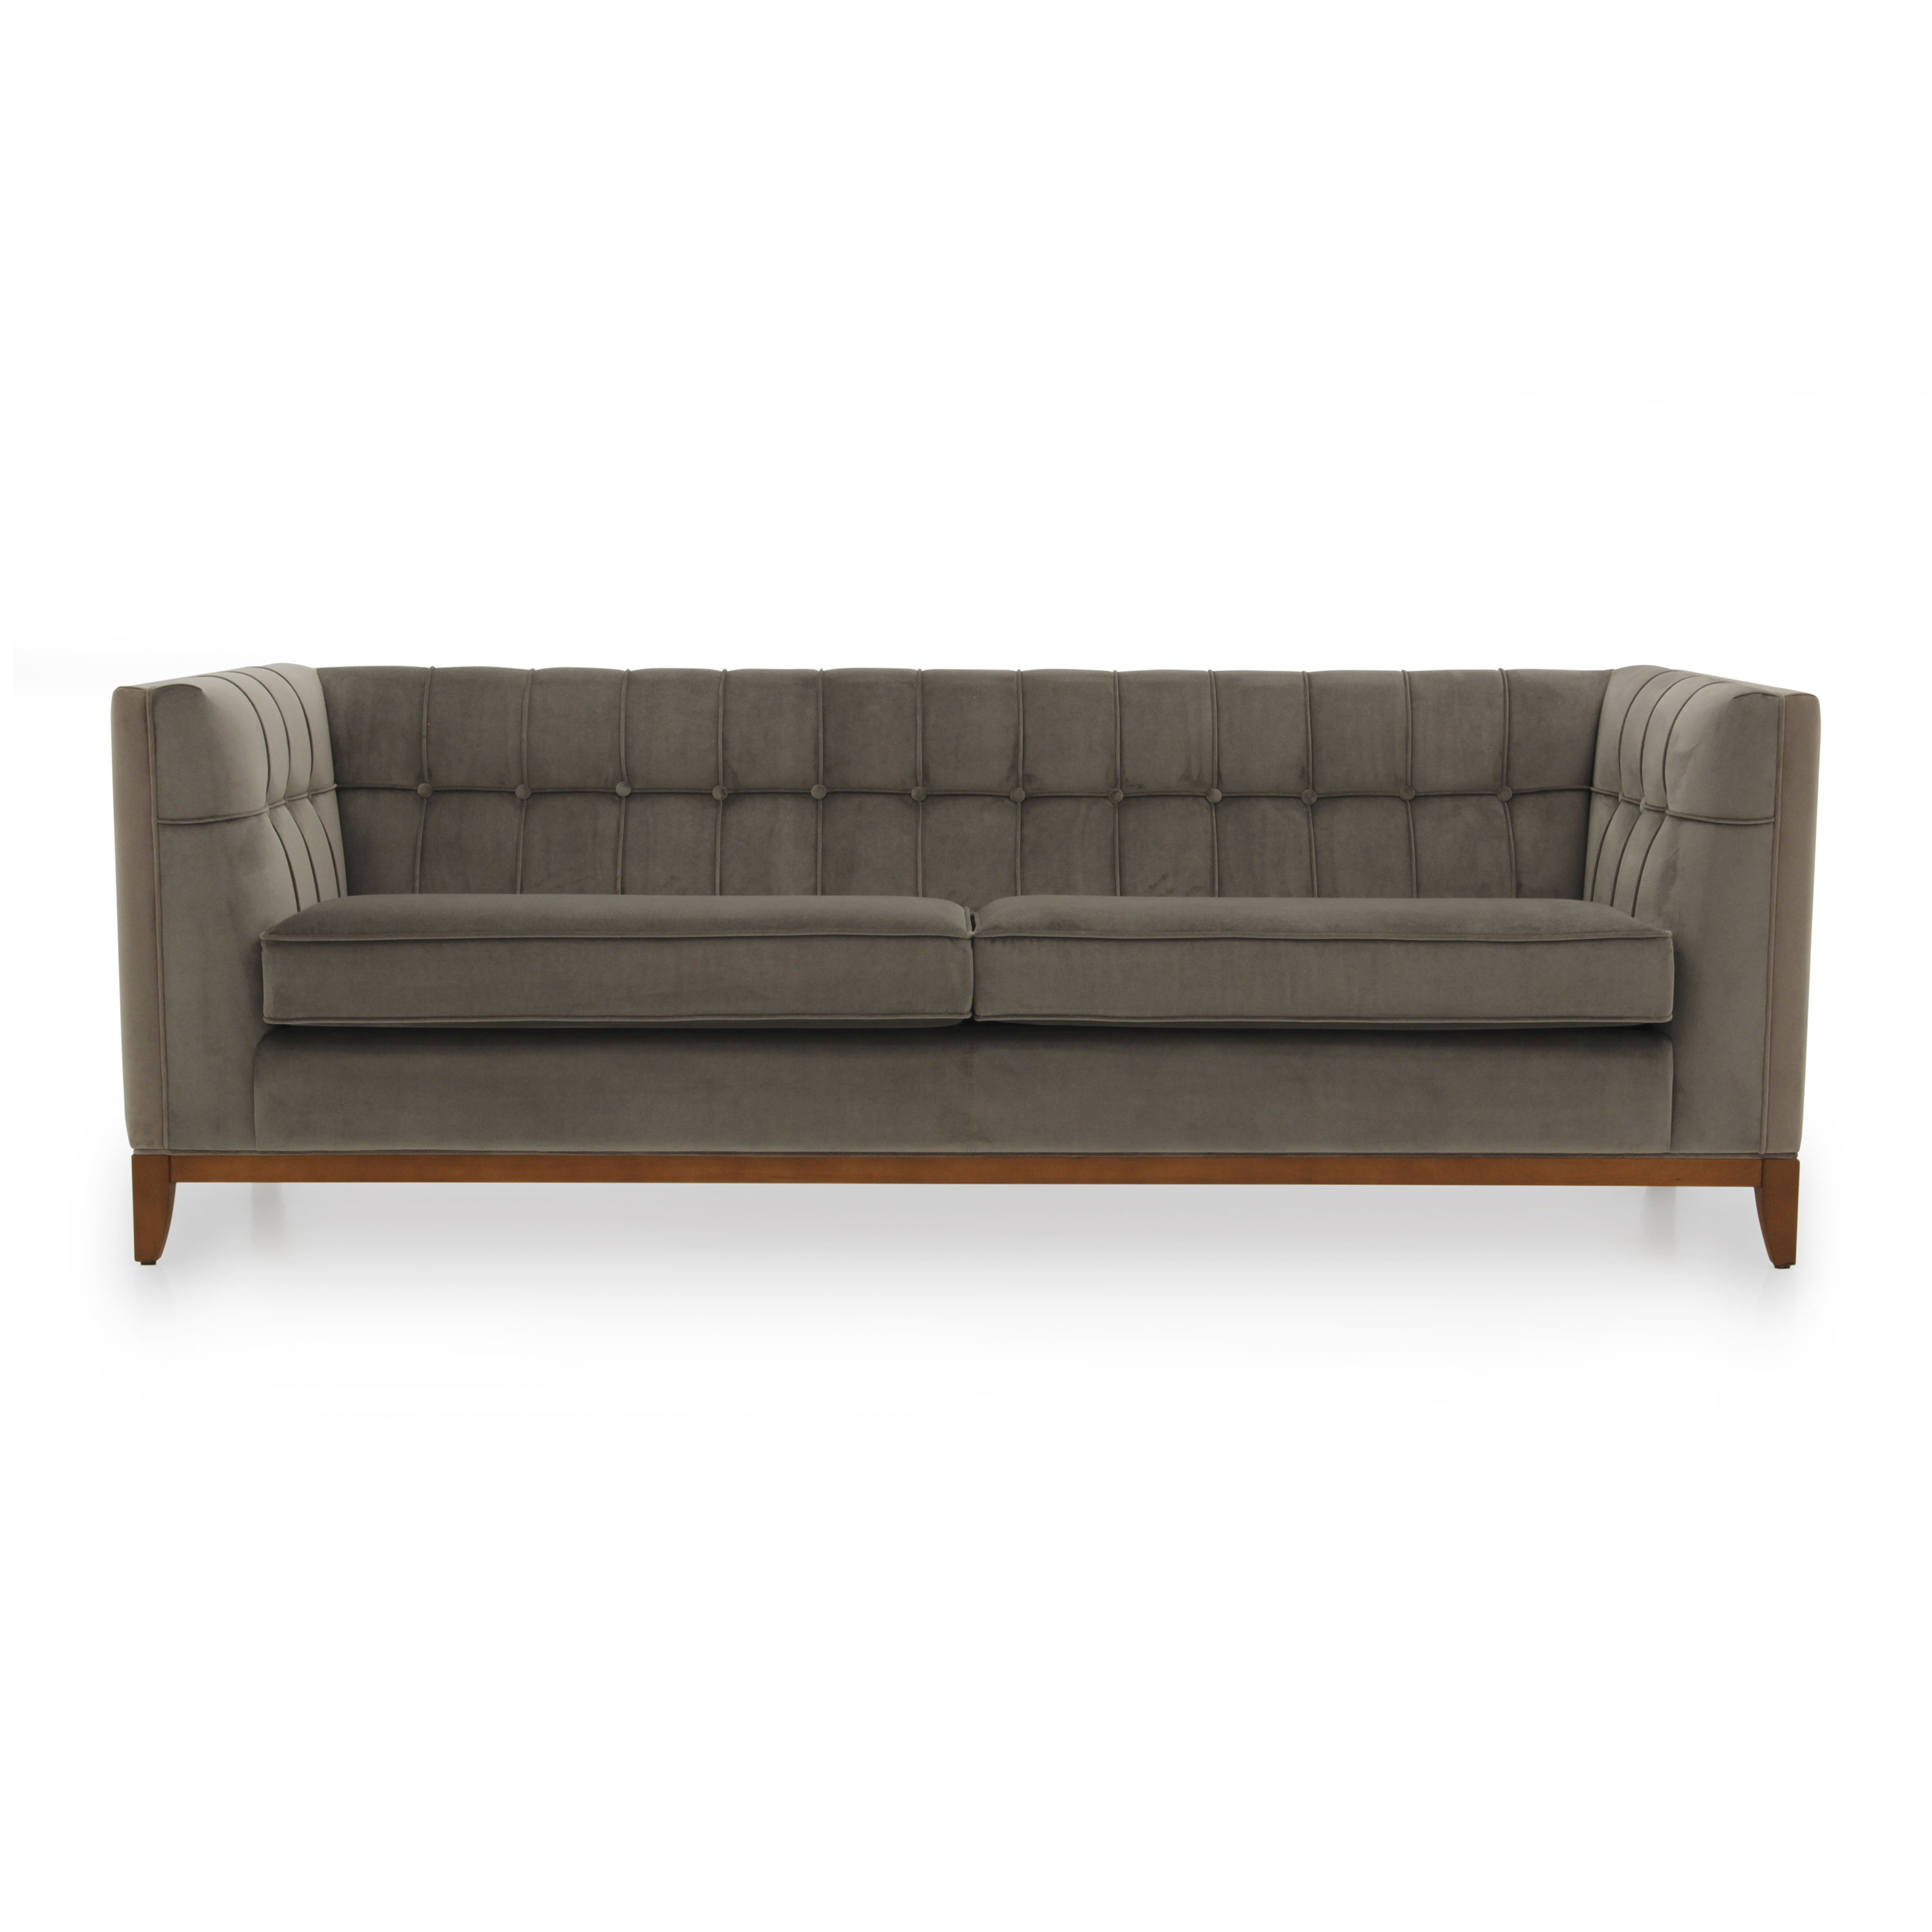 Modern Style Sofa Made of Wood Lixis | Sevensedie